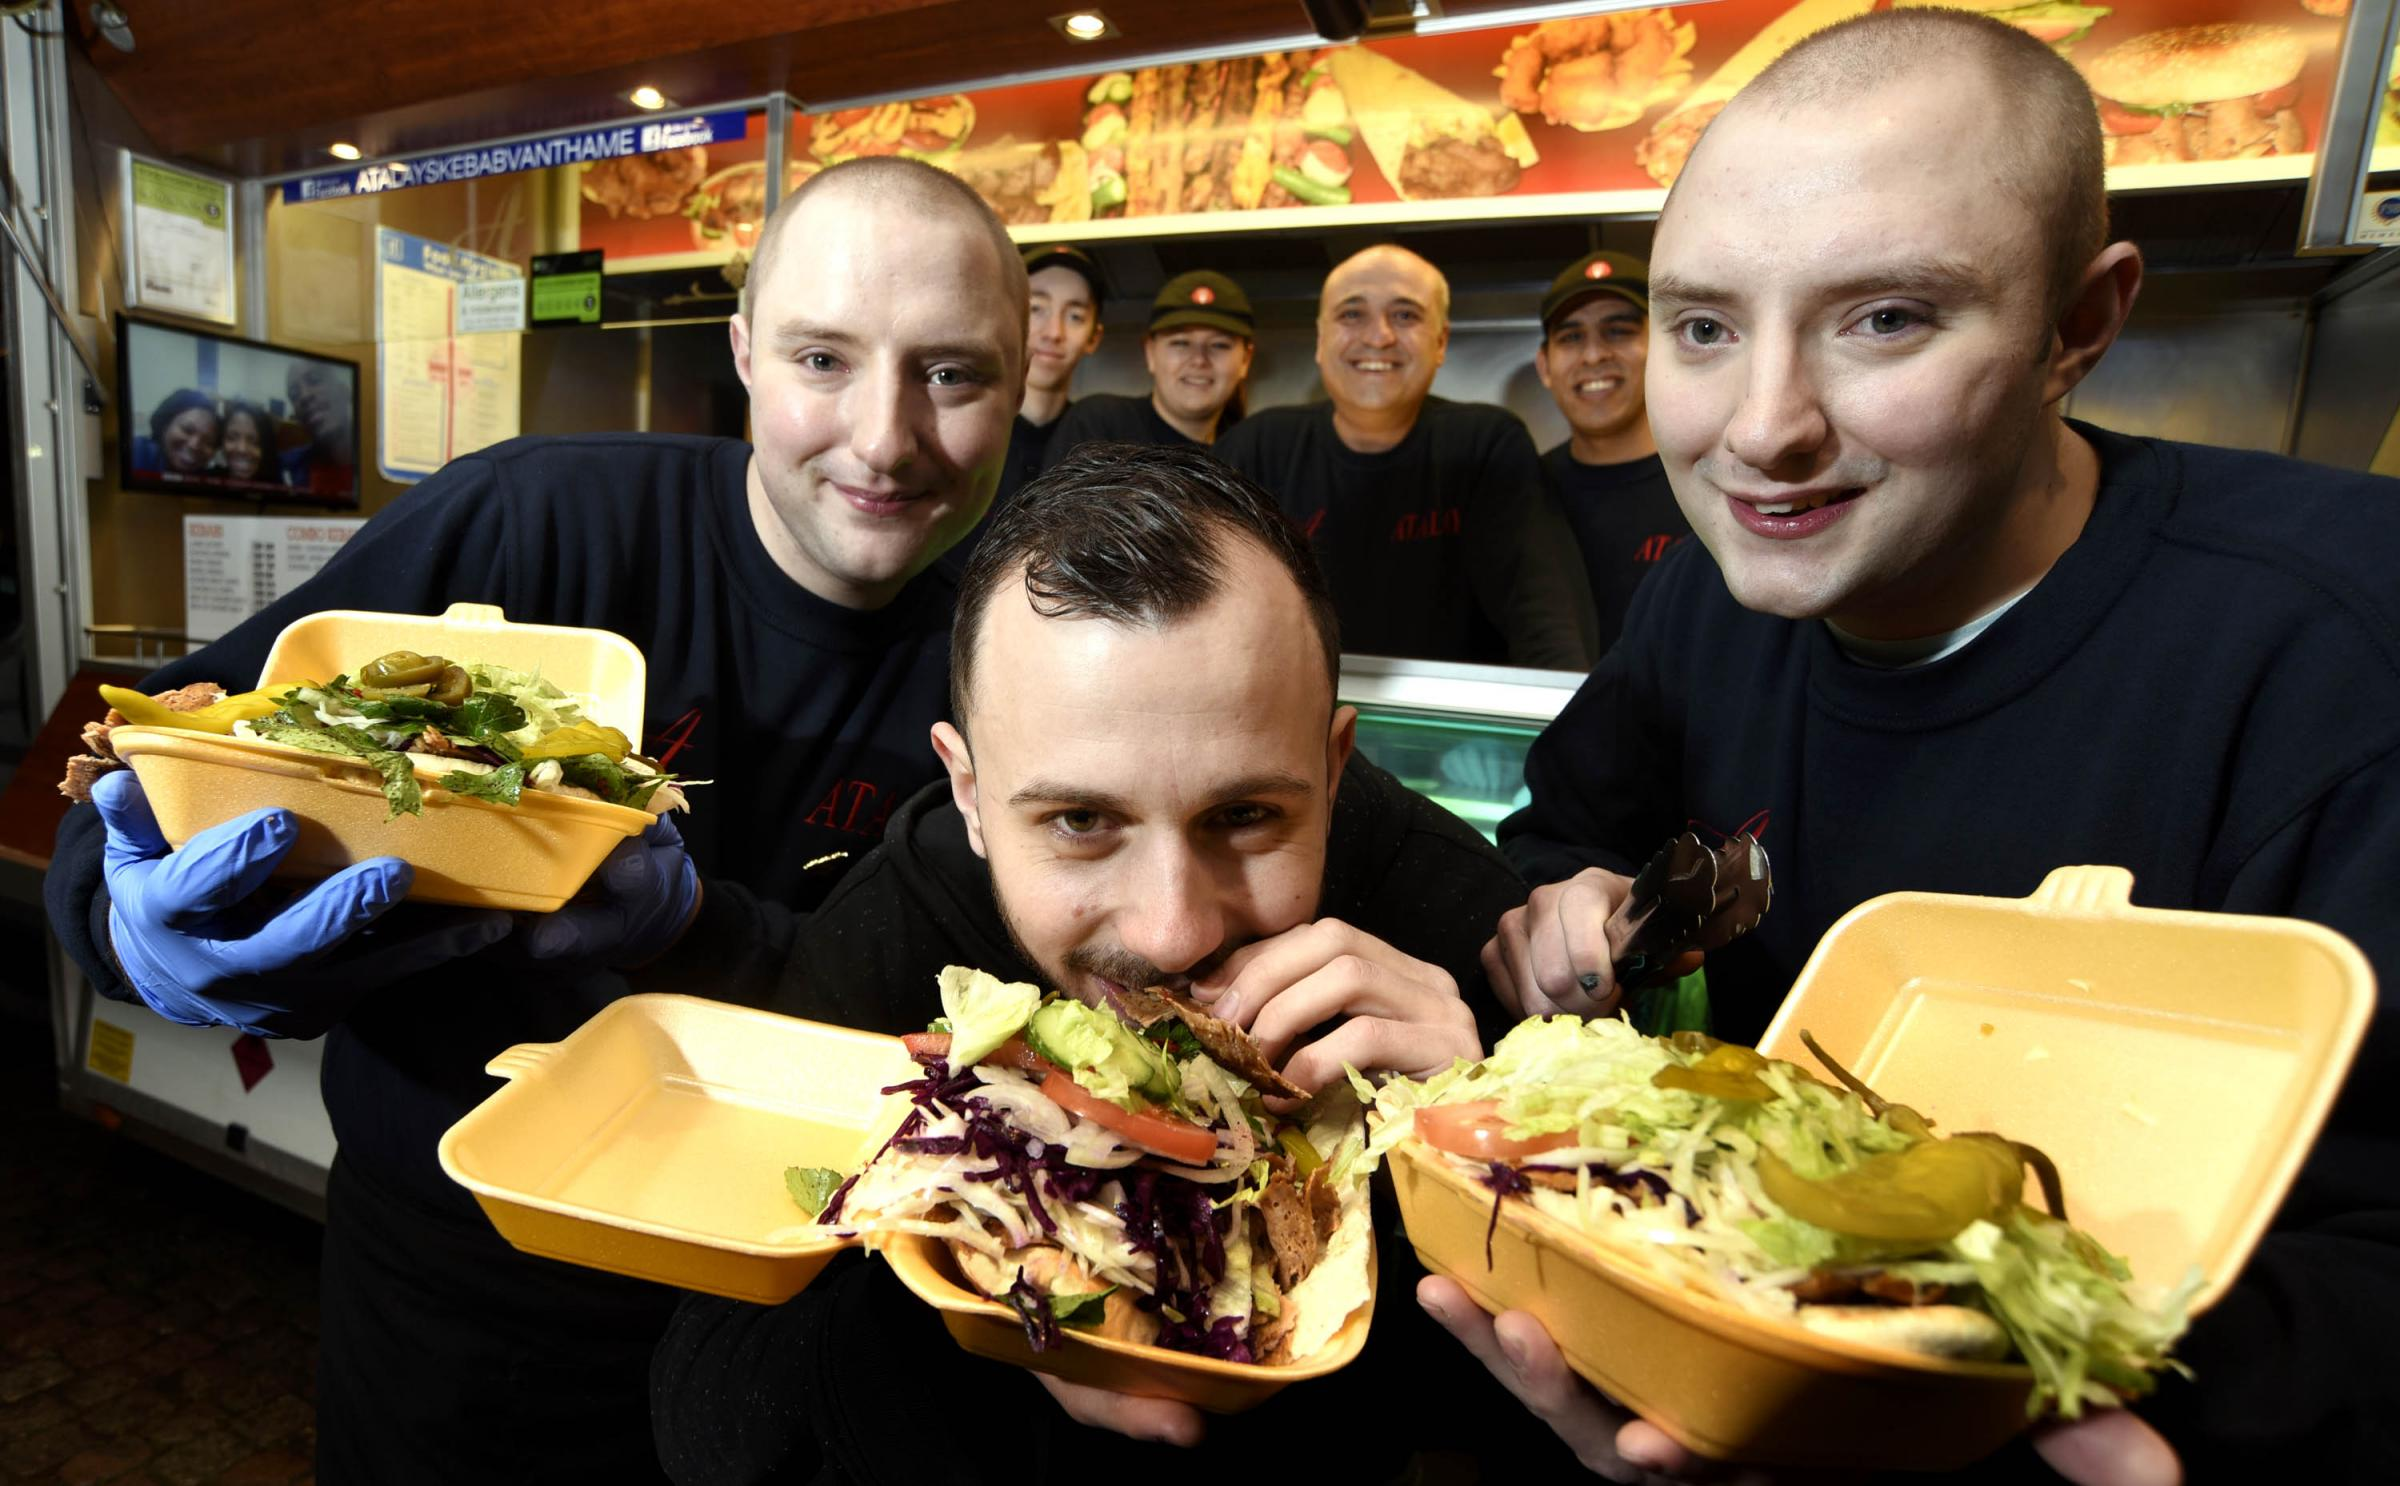 Kebab lover Dom Stanway-Williams, tucks into a kebab from Atalay Kebab van. L-R, Jason Atalay, Dom Stanway-Williams and Joshua Atalay.